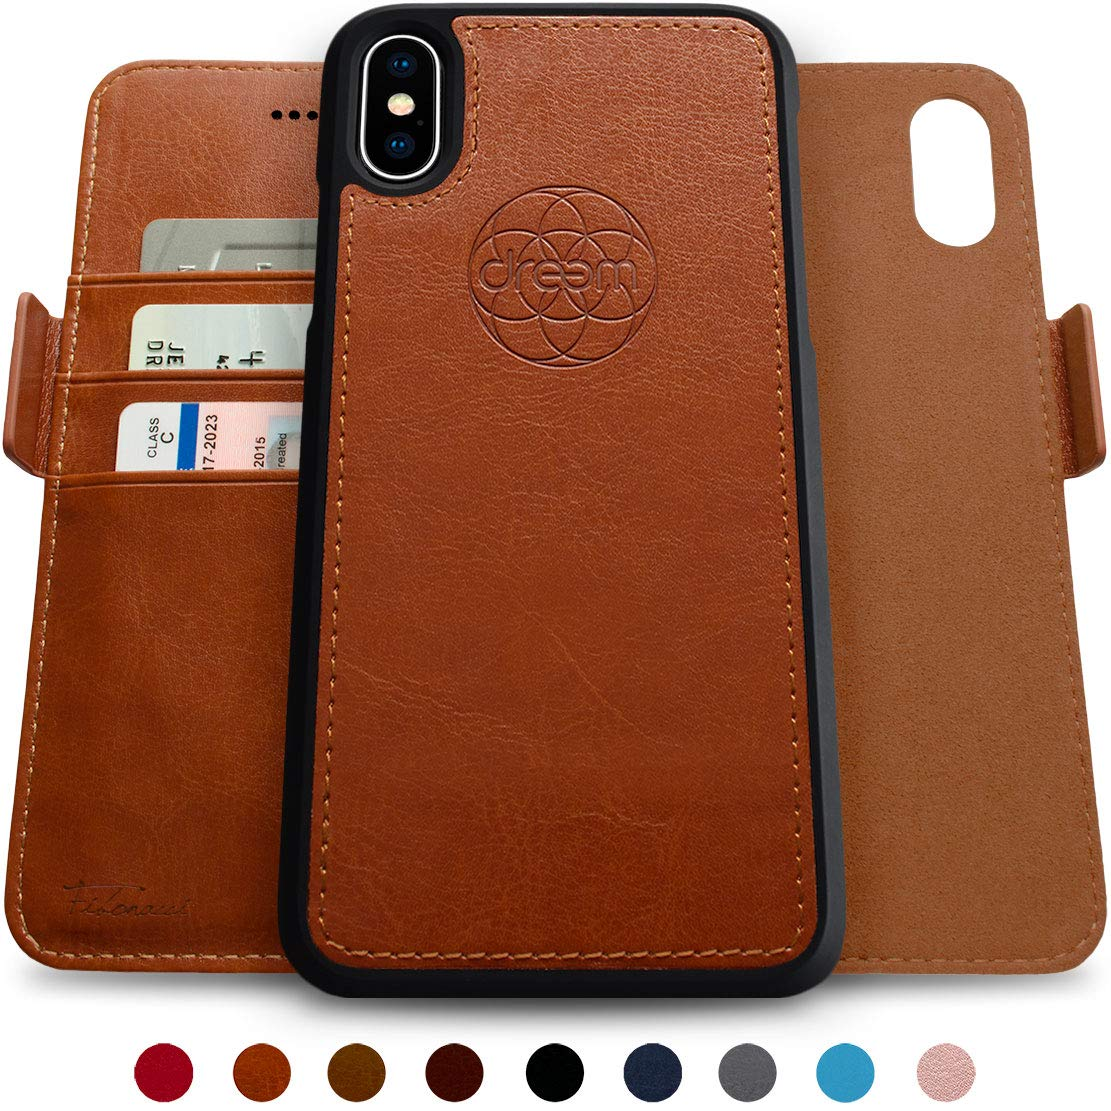 Dreem Fibonacci 2-in-1 Wallet-Case for iPhone X & Xs, Magnetic Detachable Shock-Proof TPU Slim-Case, Wireless Charge, RFID Protection, 2-Way Stand, Luxury Vegan Leather, Gift-Box - Caramel